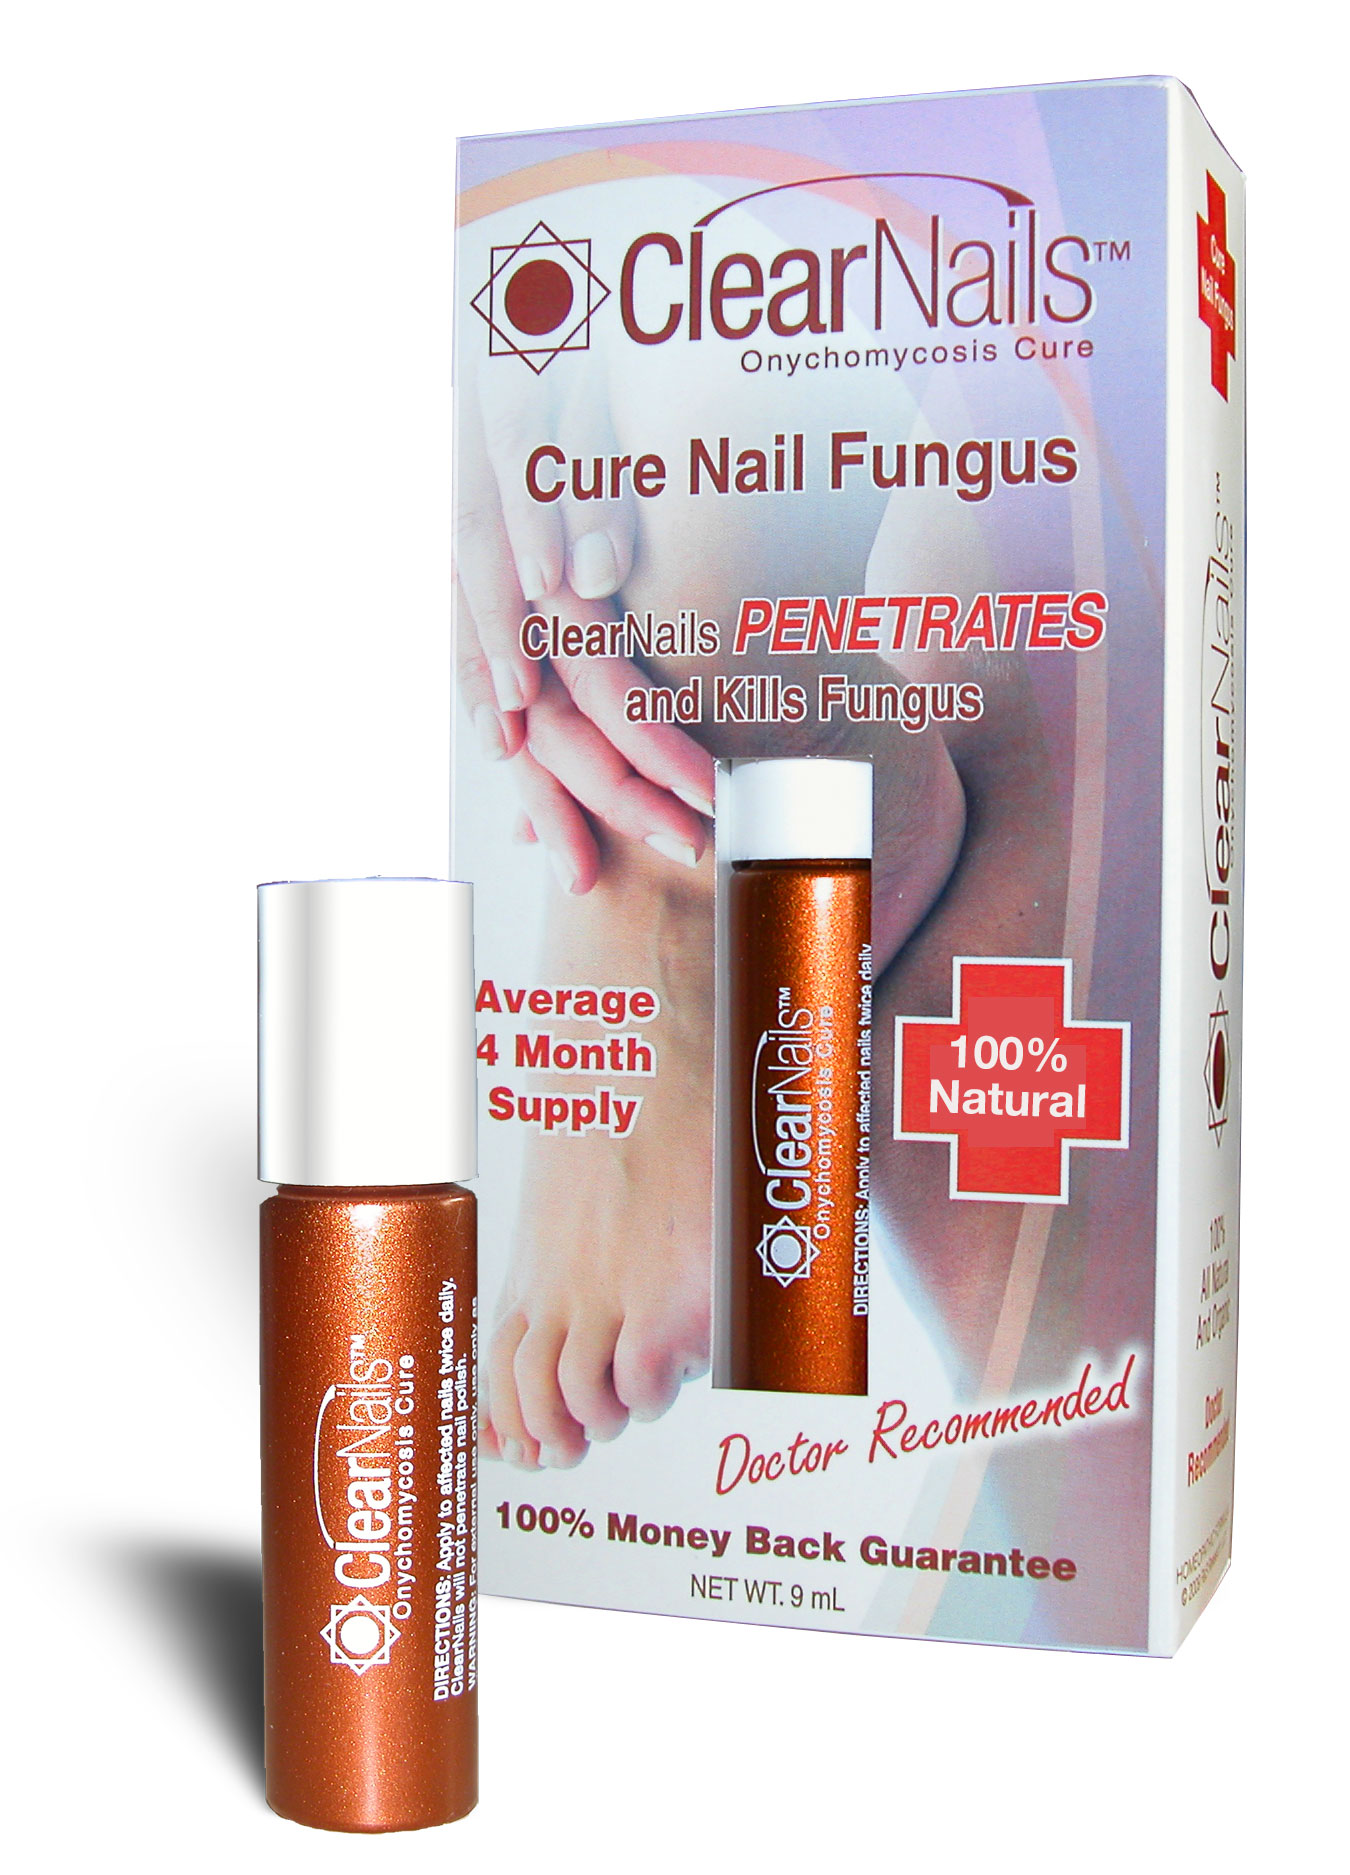 ClearNails-Box-and-Bottle